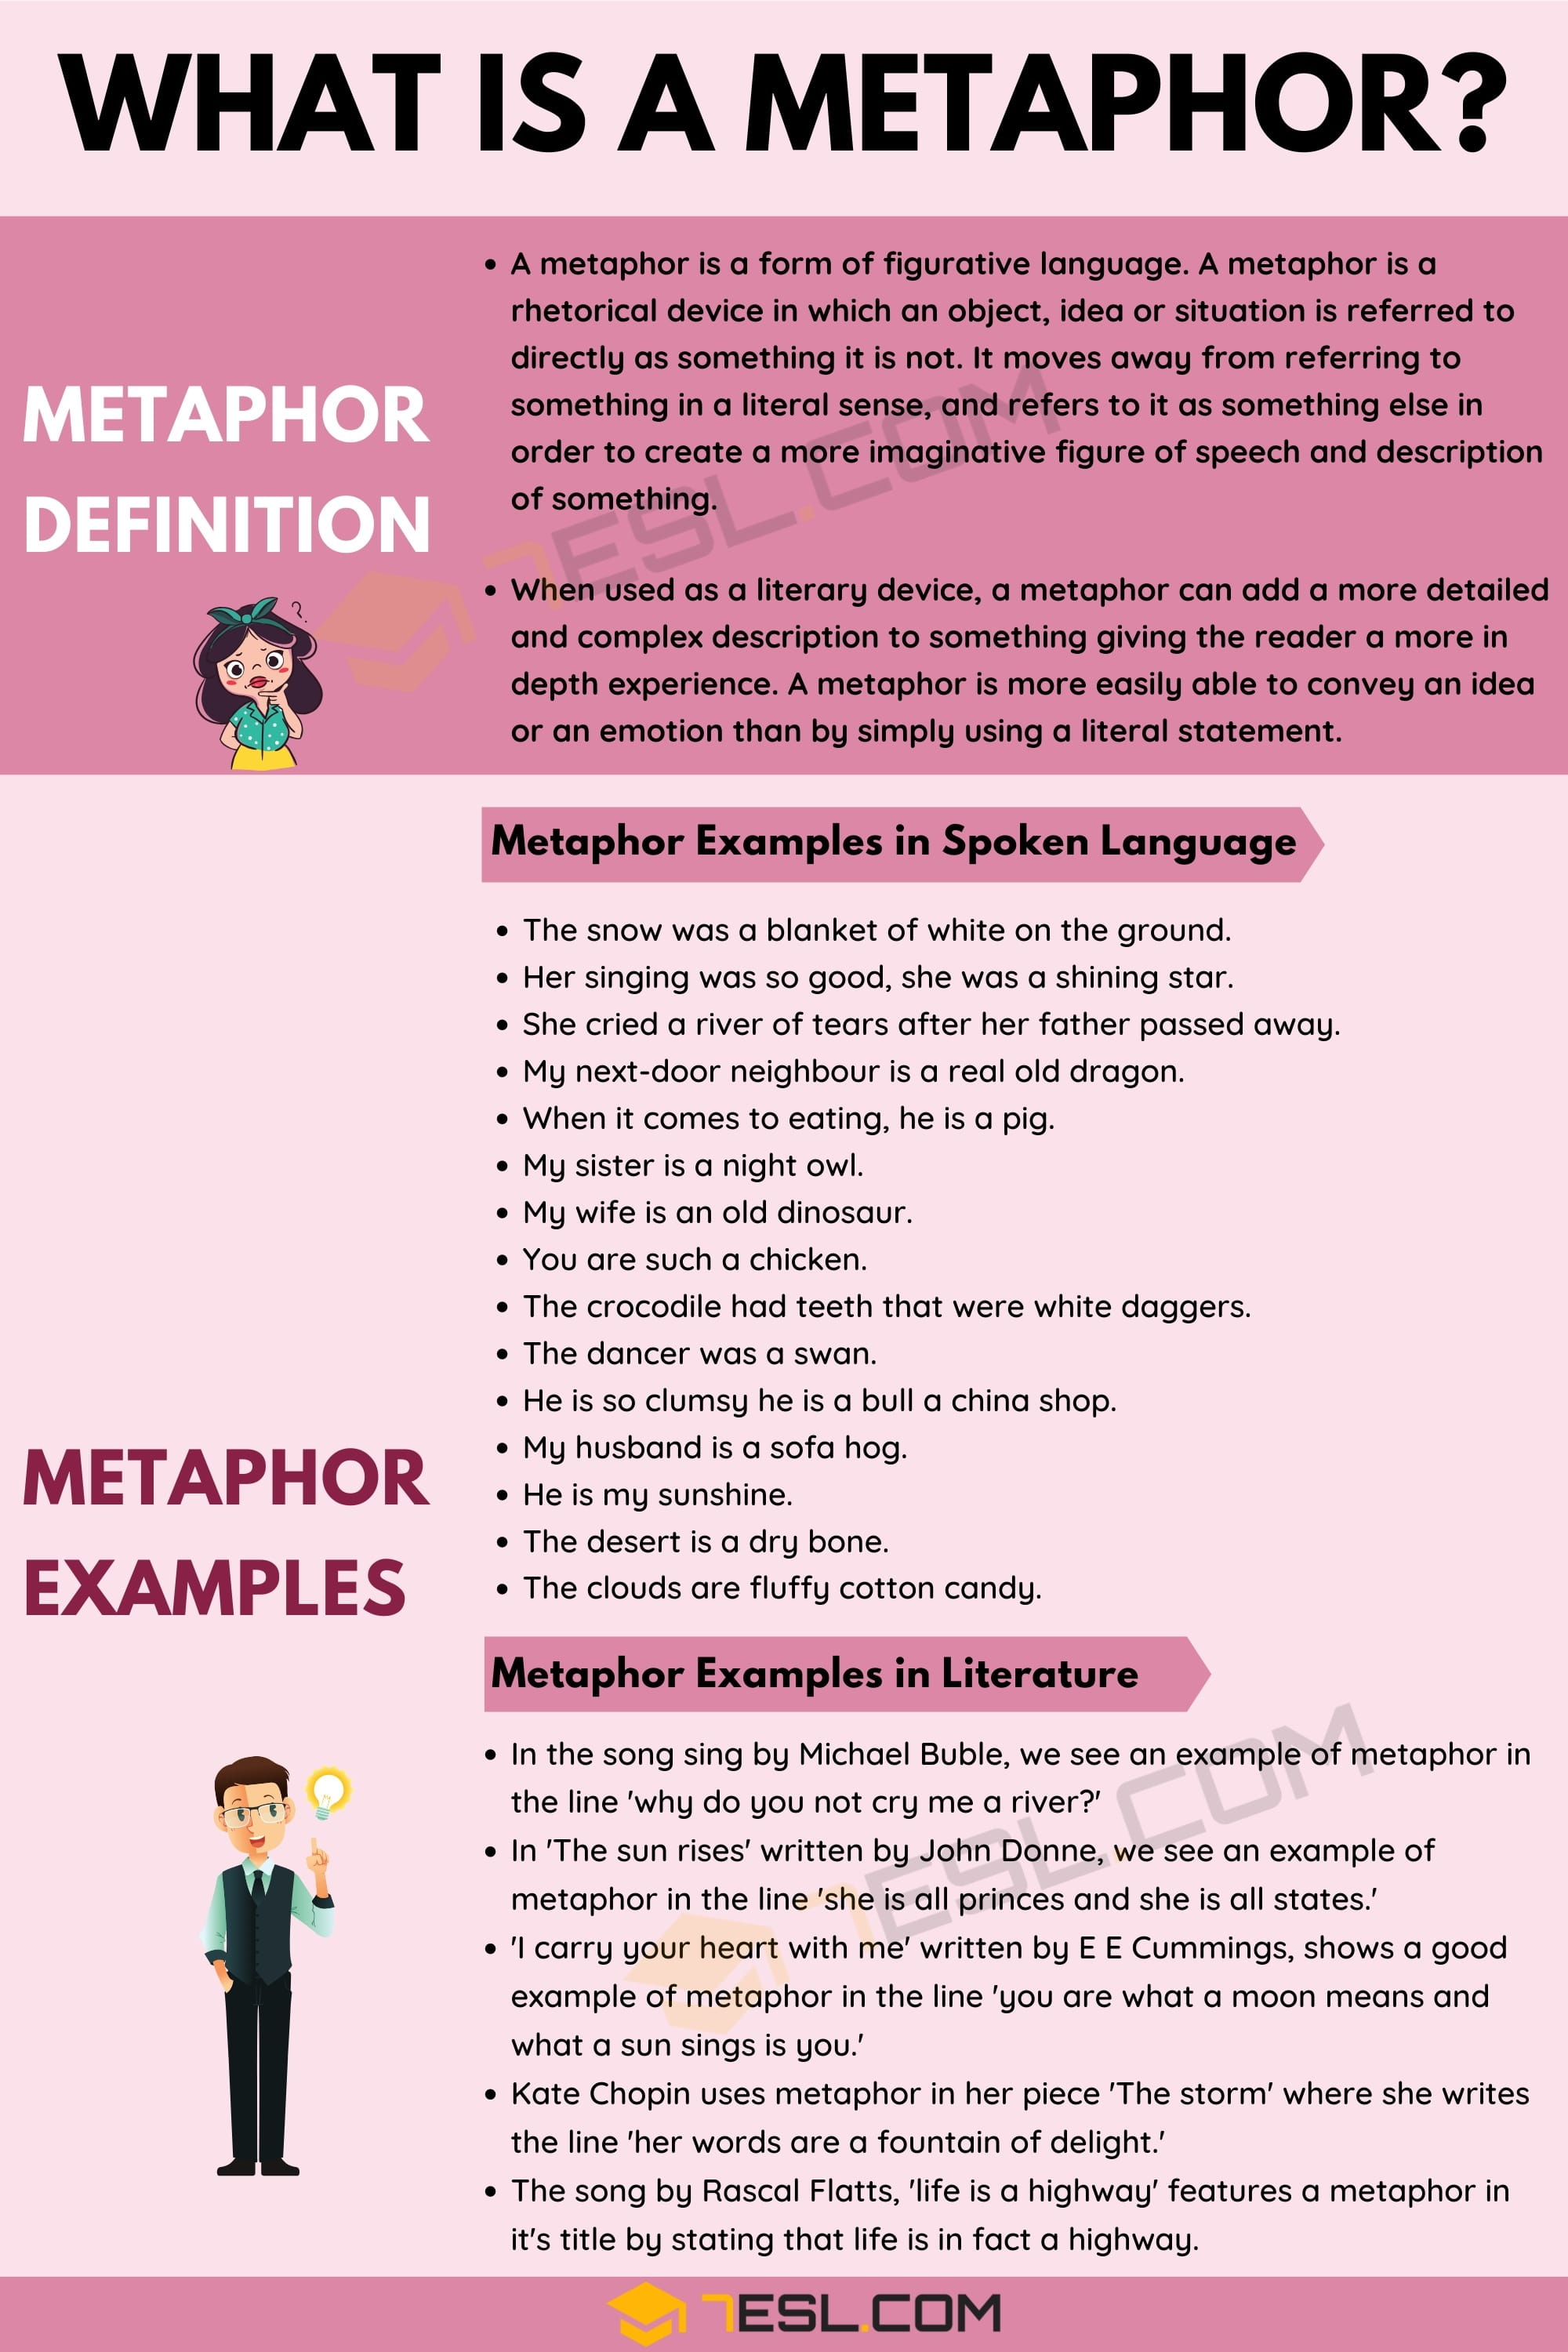 Metaphor: Definition and Examples of Metaphor in Spoken Language & Literature 1